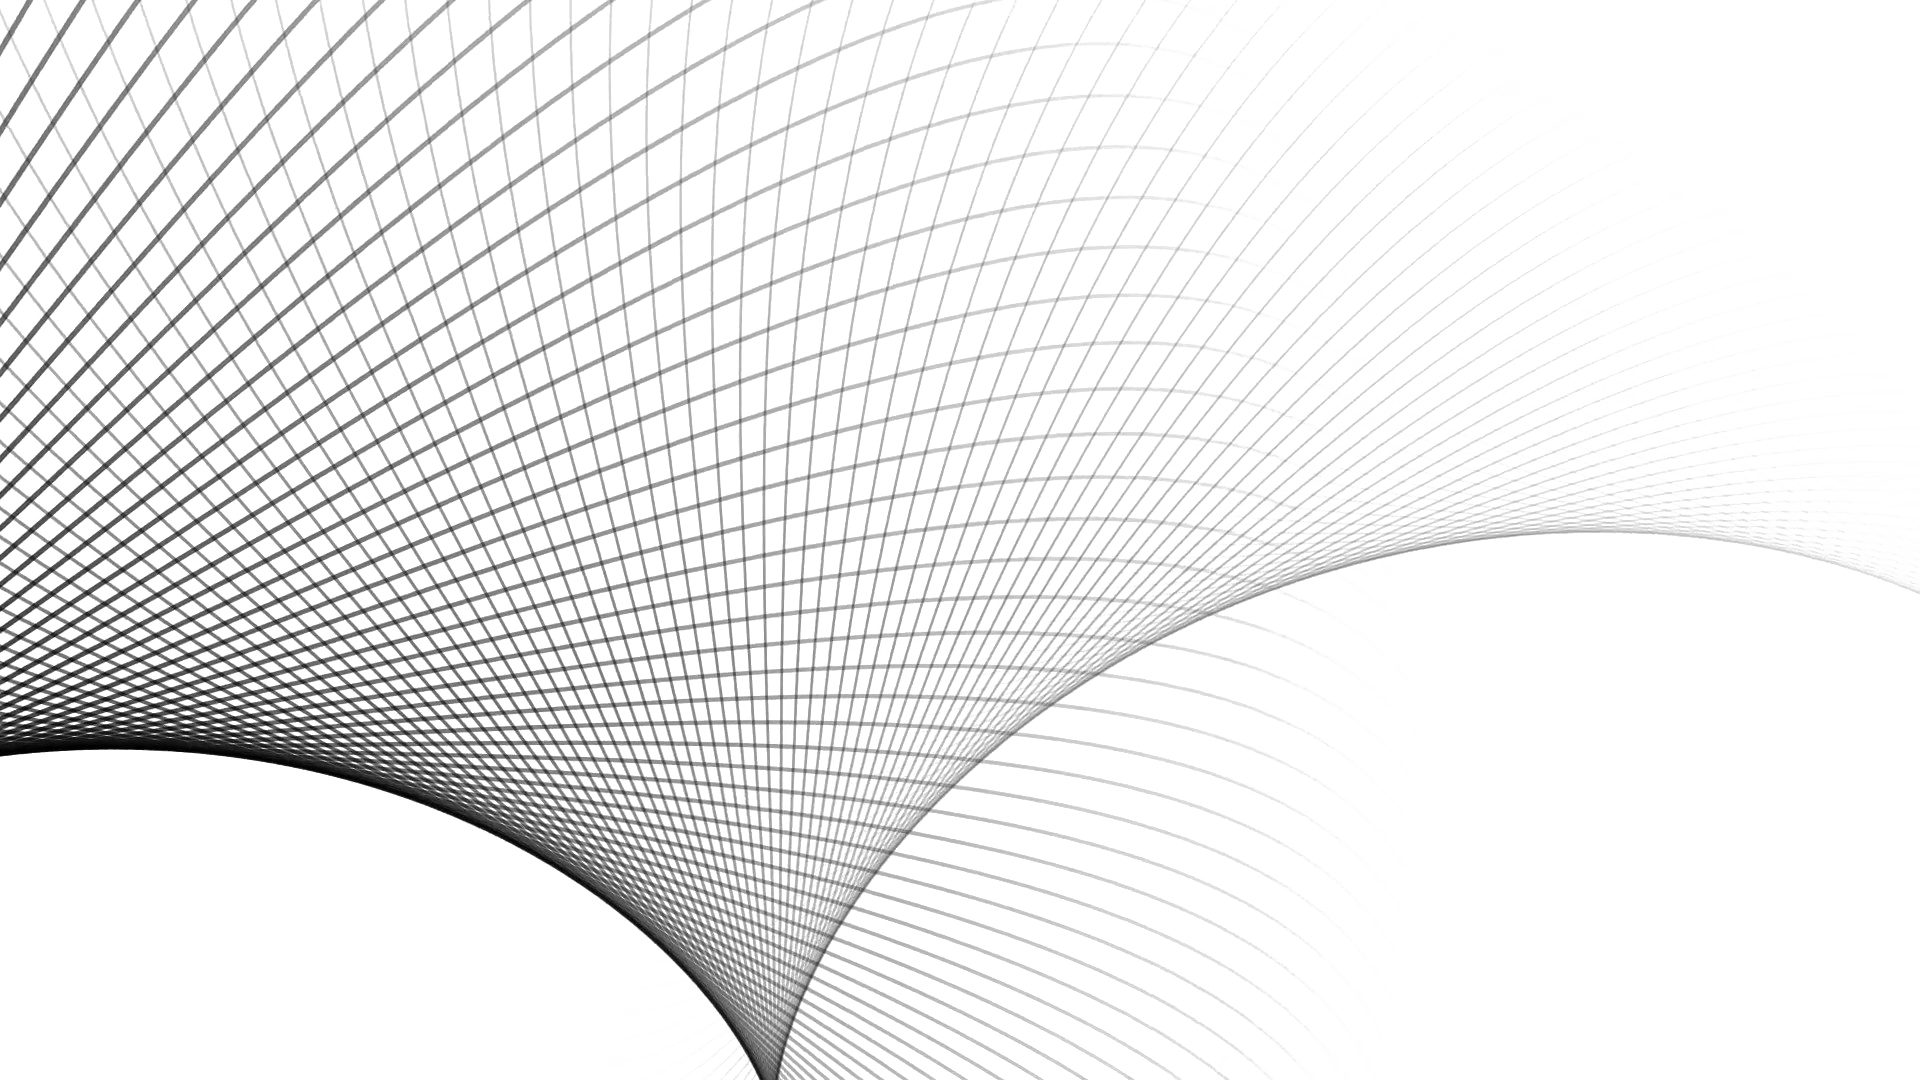 Abstract Lines PNG Background Image.